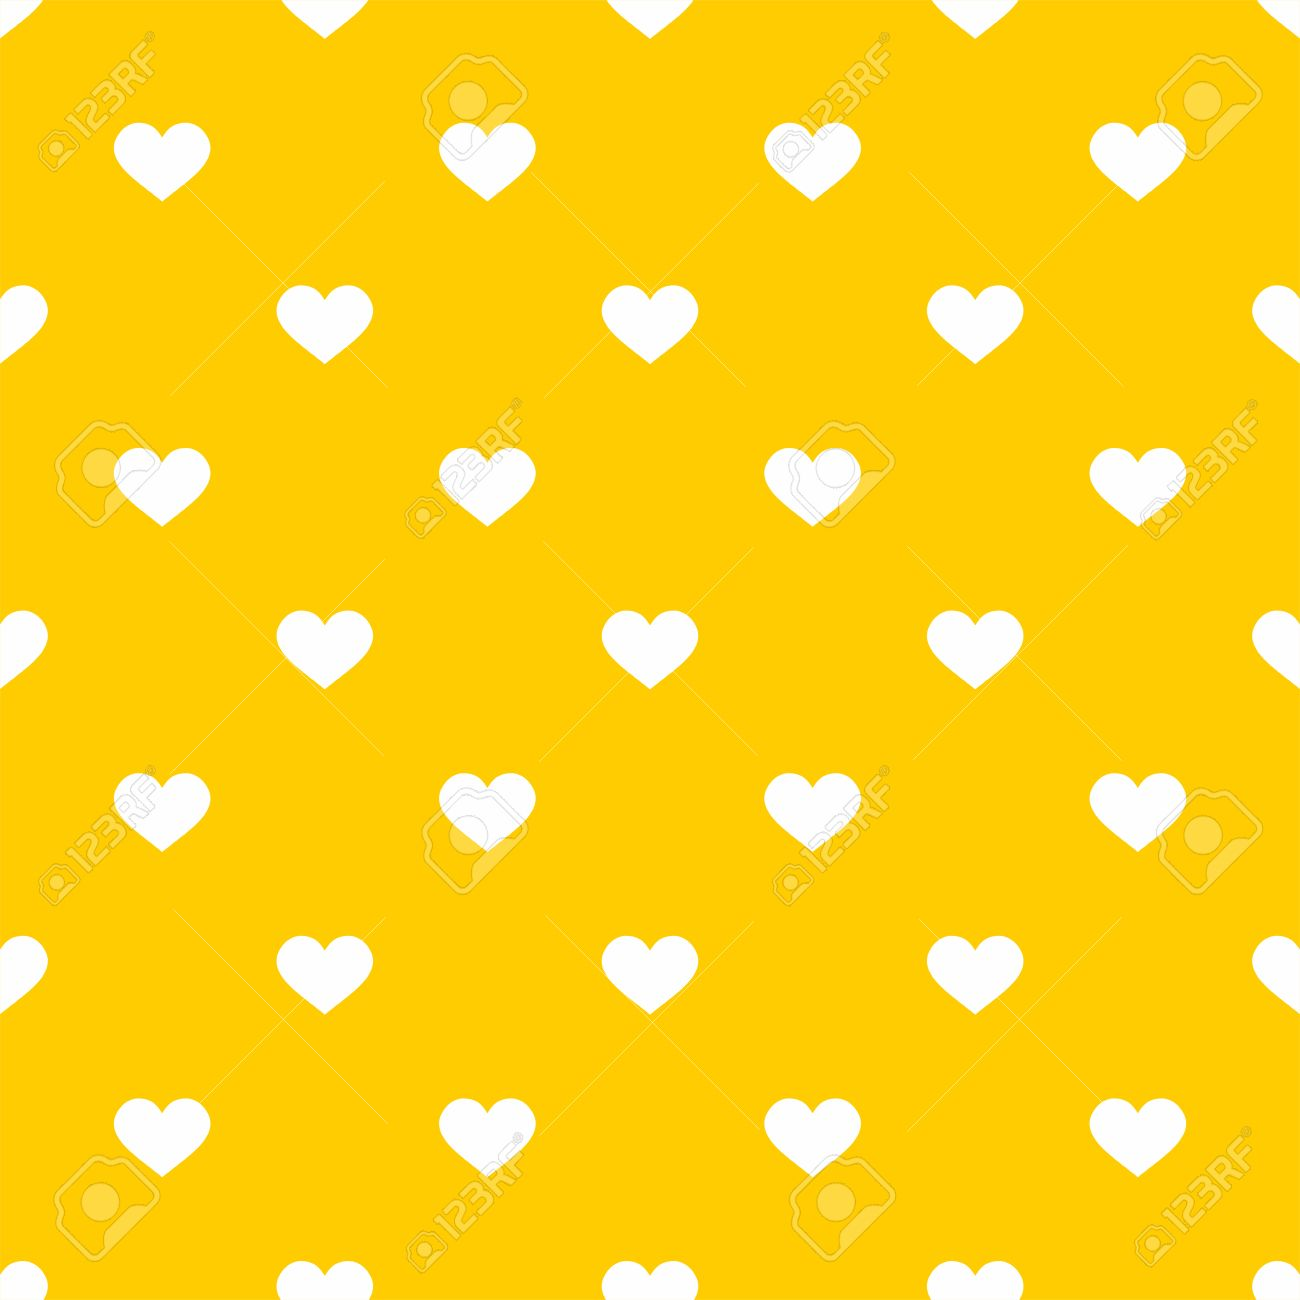 Tile Cute Vector Pattern With White Hearts On Yellow Background ...